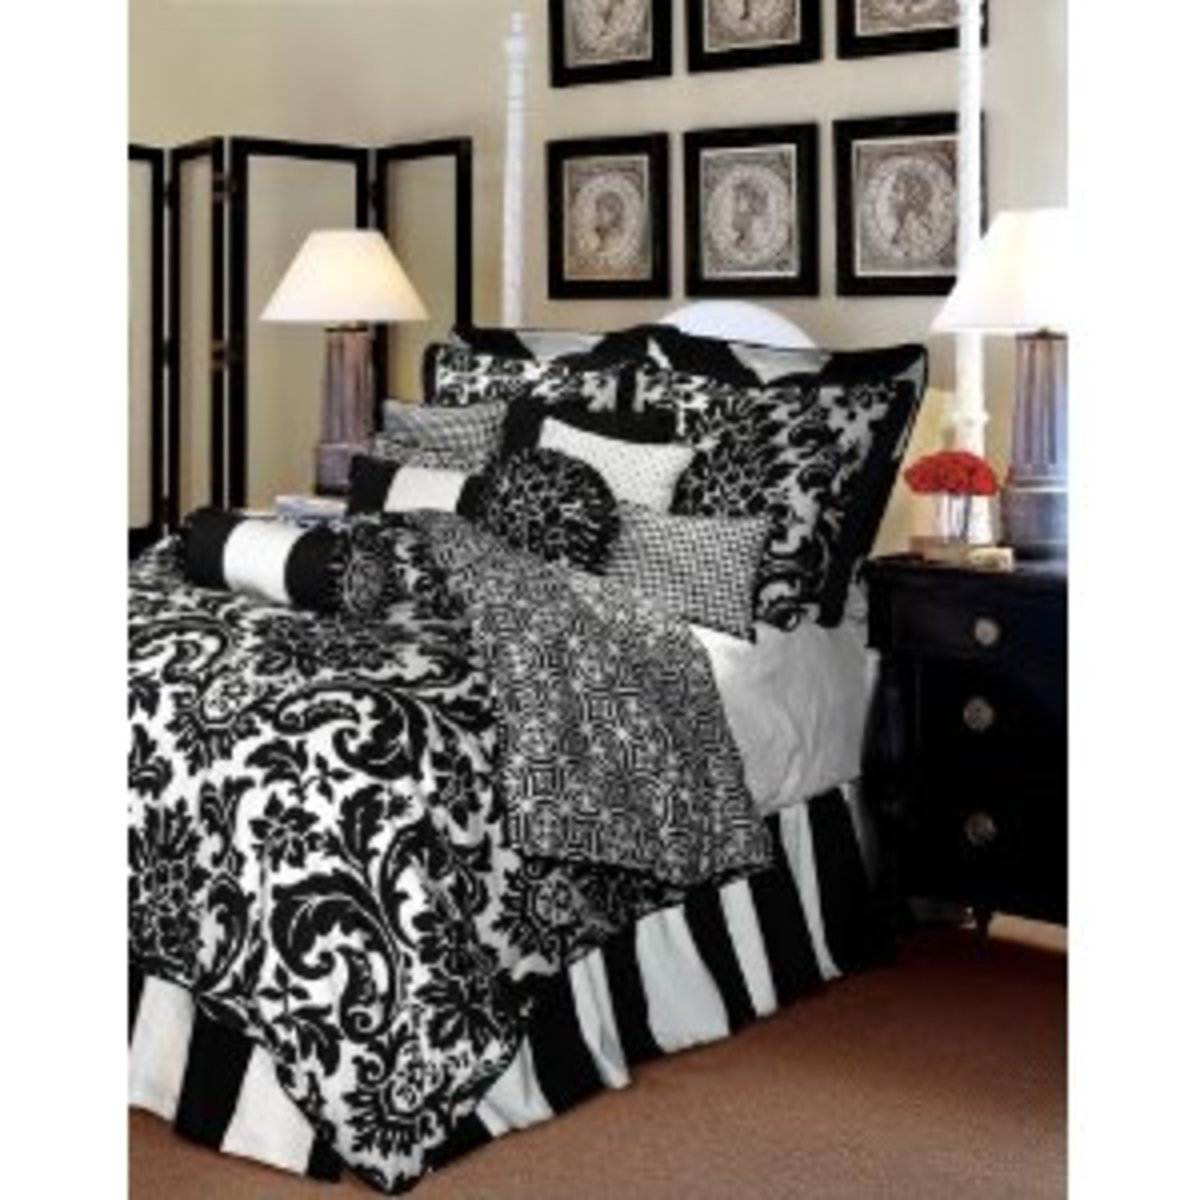 Buy A Black and White Comforter Set